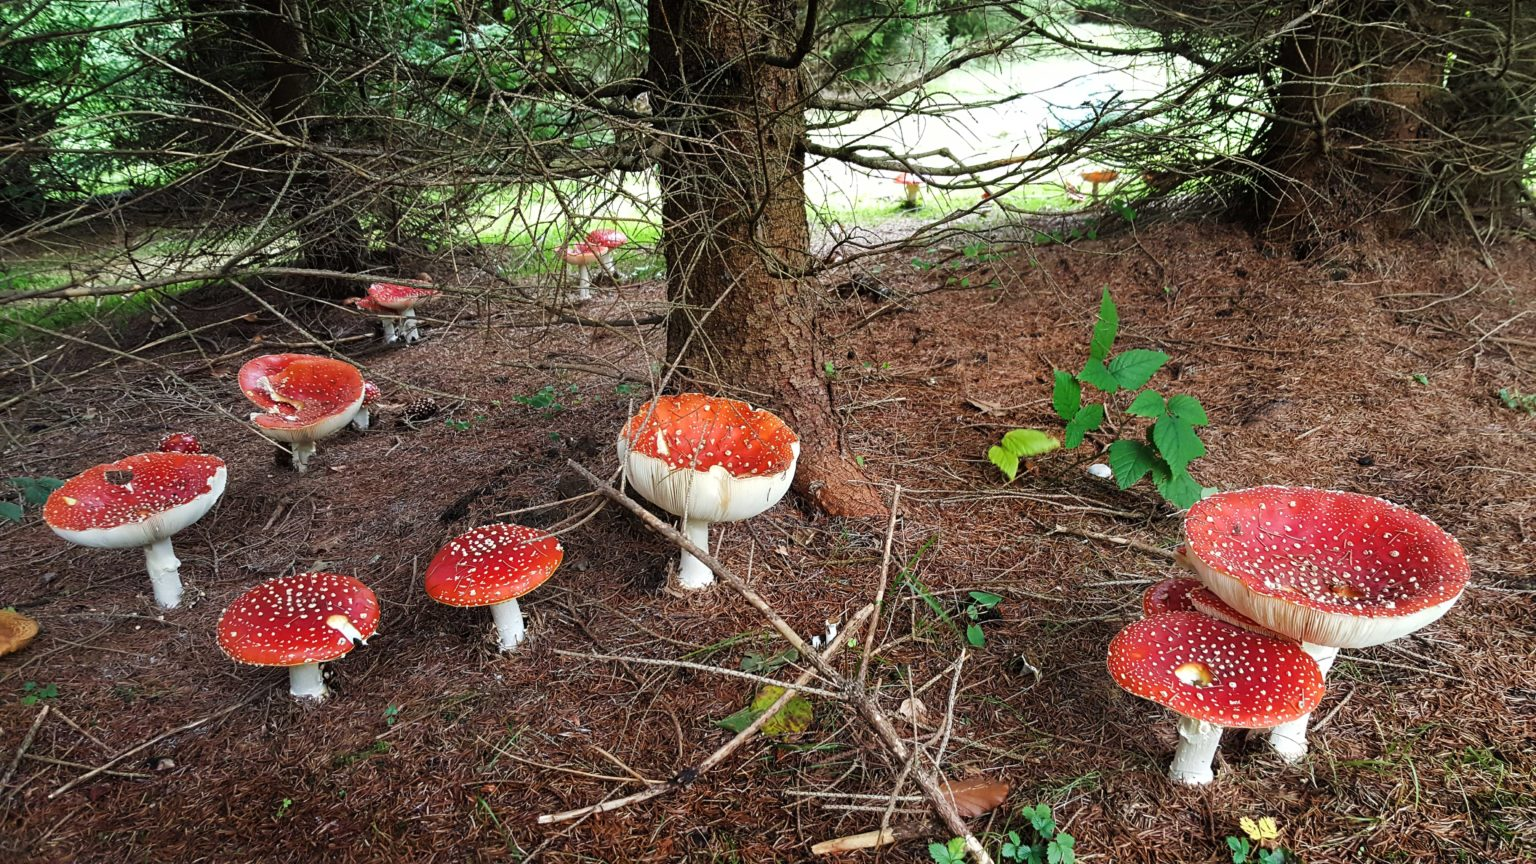 incredible-foraging-curs-micologie-amanita-muscaria